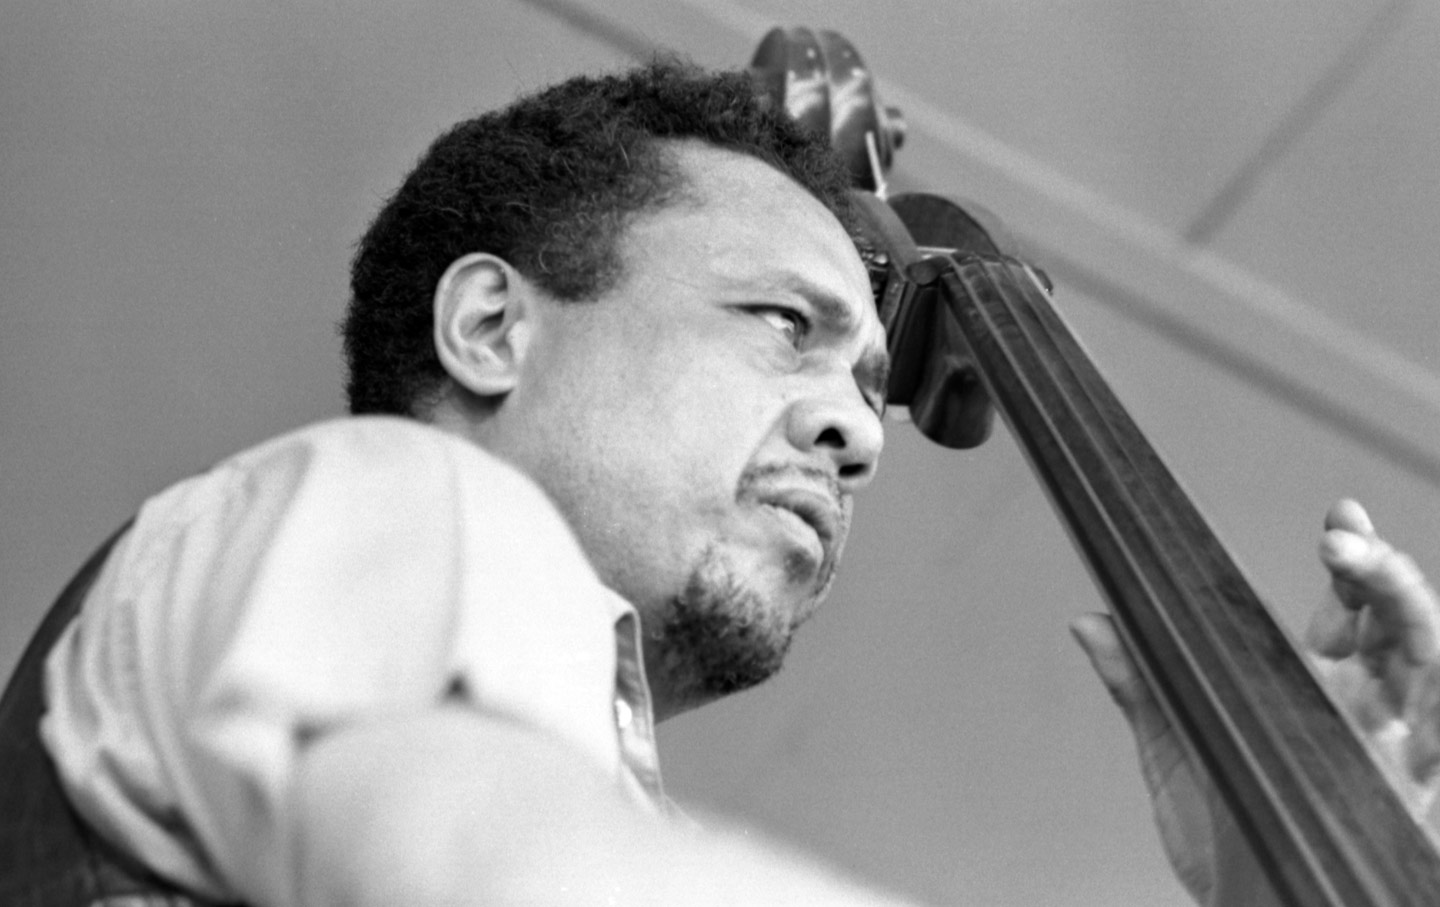 Charles Mingus (photo by Ray Avery/CTS Images)